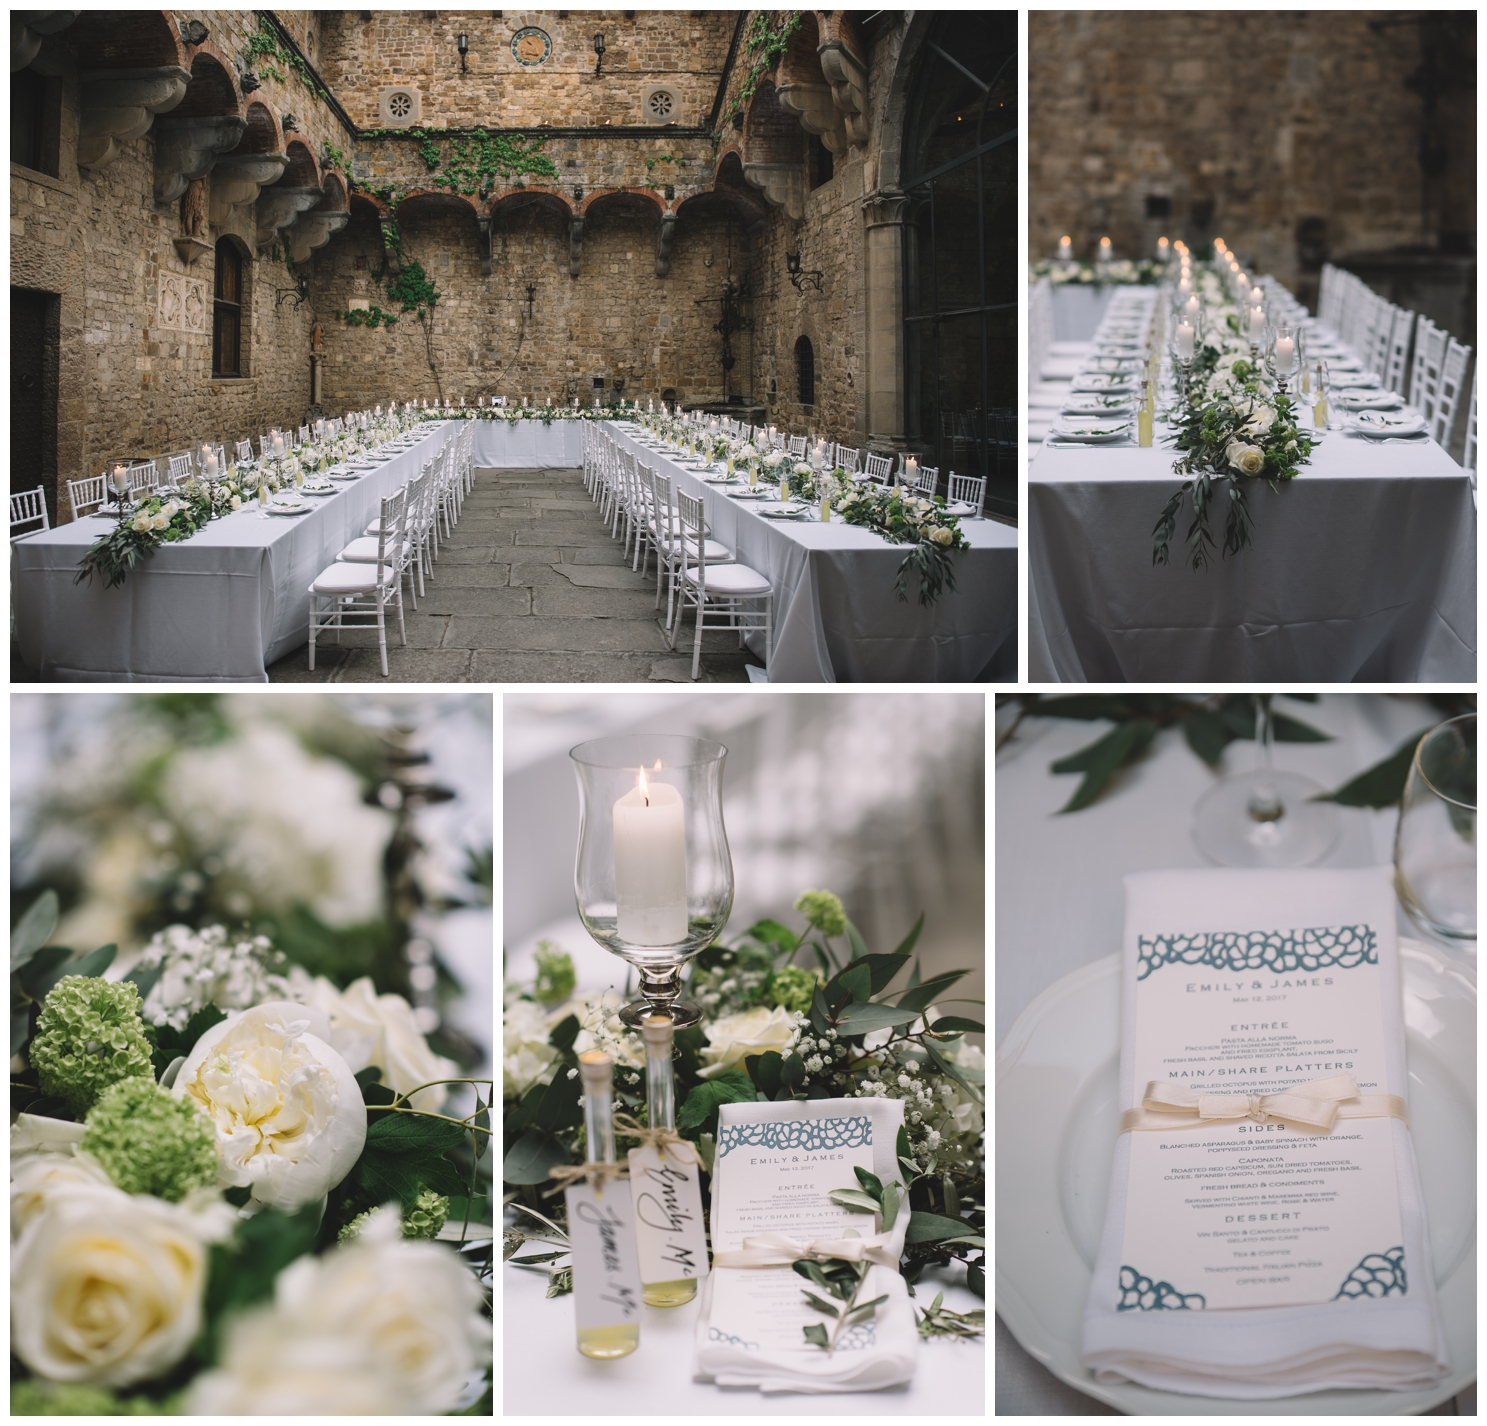 Wedding Photographer in Tuscany, Wedding Photographer in Florence, Wedding Photographer Siena, Italian Wedding Photographer, Wedding in Tuscany, Wedding in Florence, Wedding in Italy, Castello di Vincigliata